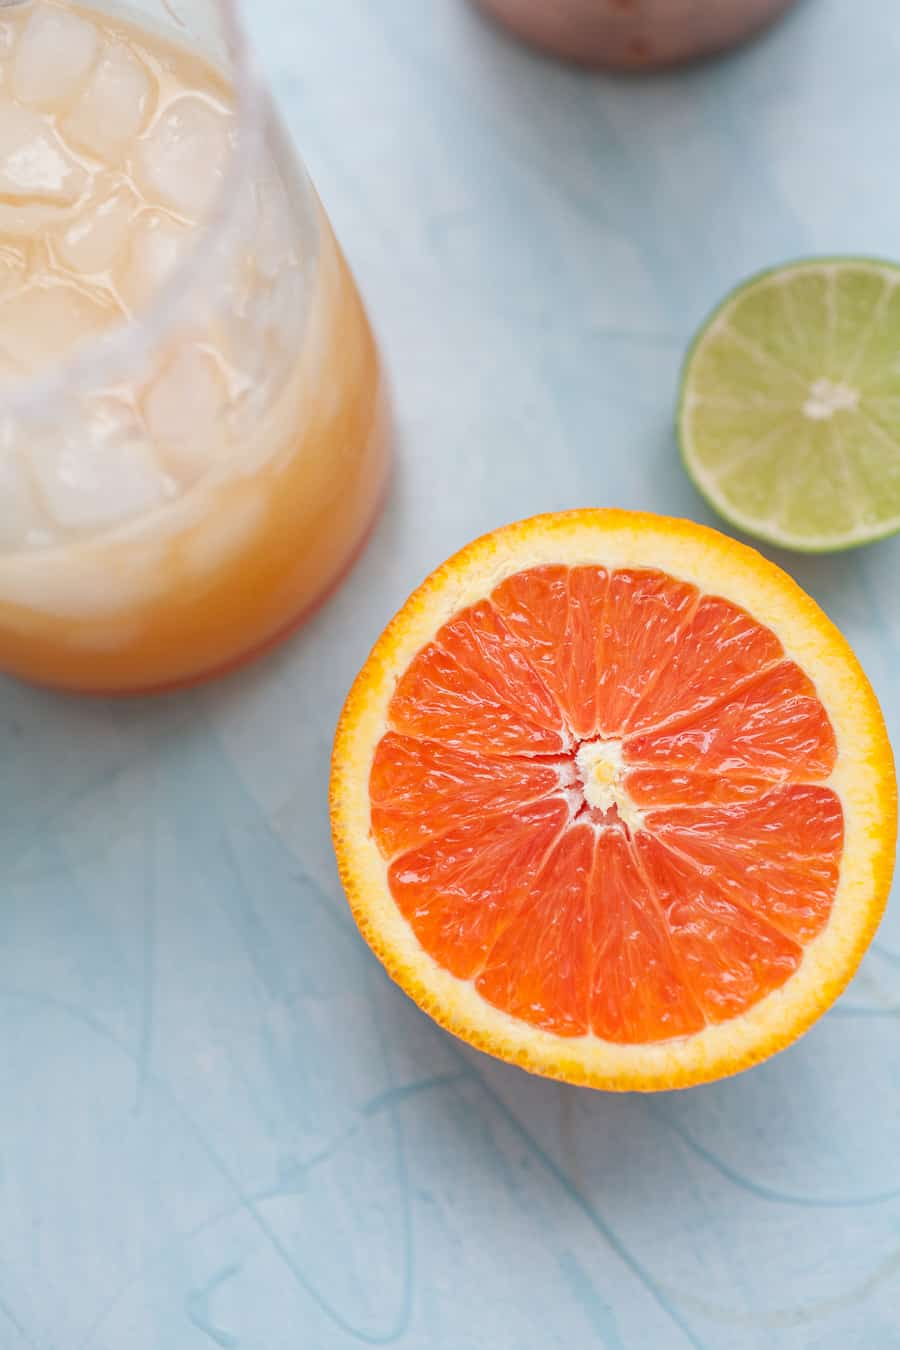 With Cinco de Mayo around the corner, these Simple Orange Lime Margaritas are perfect to have on your menu. They are made with fresh squeezed orange juice, lime juice, triple sec and tequila for a simple, flavorful and fun margarita recipe! This is a twist on a classic margarita recipe that you're definitely going to want to try.